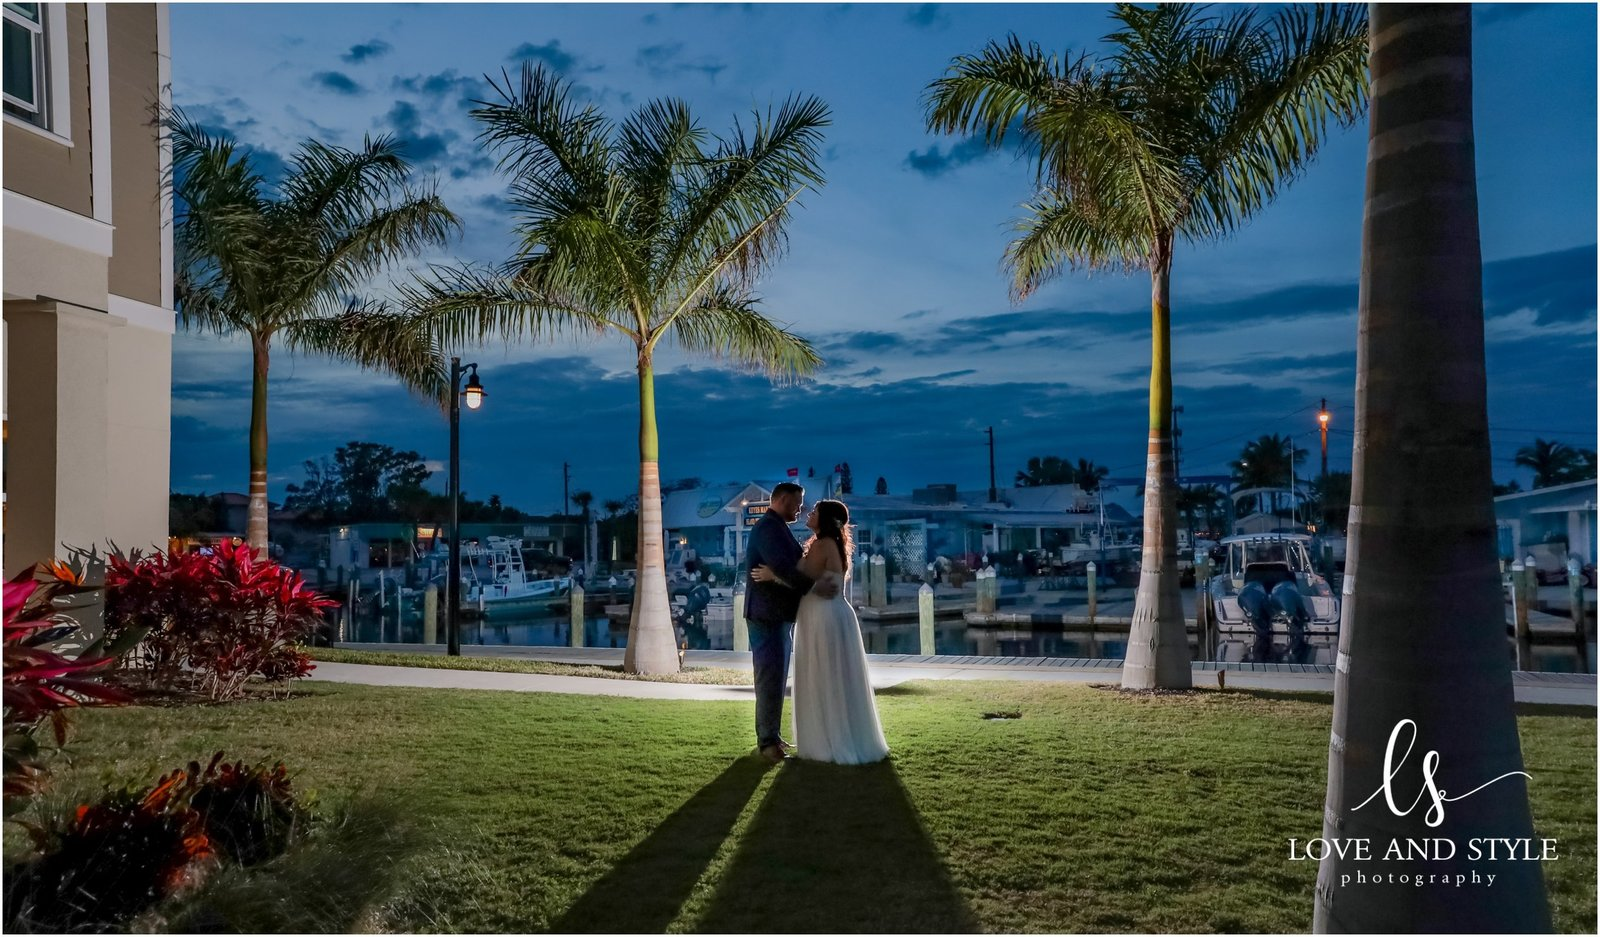 Wedding Photography at The Waterline Marina on Anna Maria Island